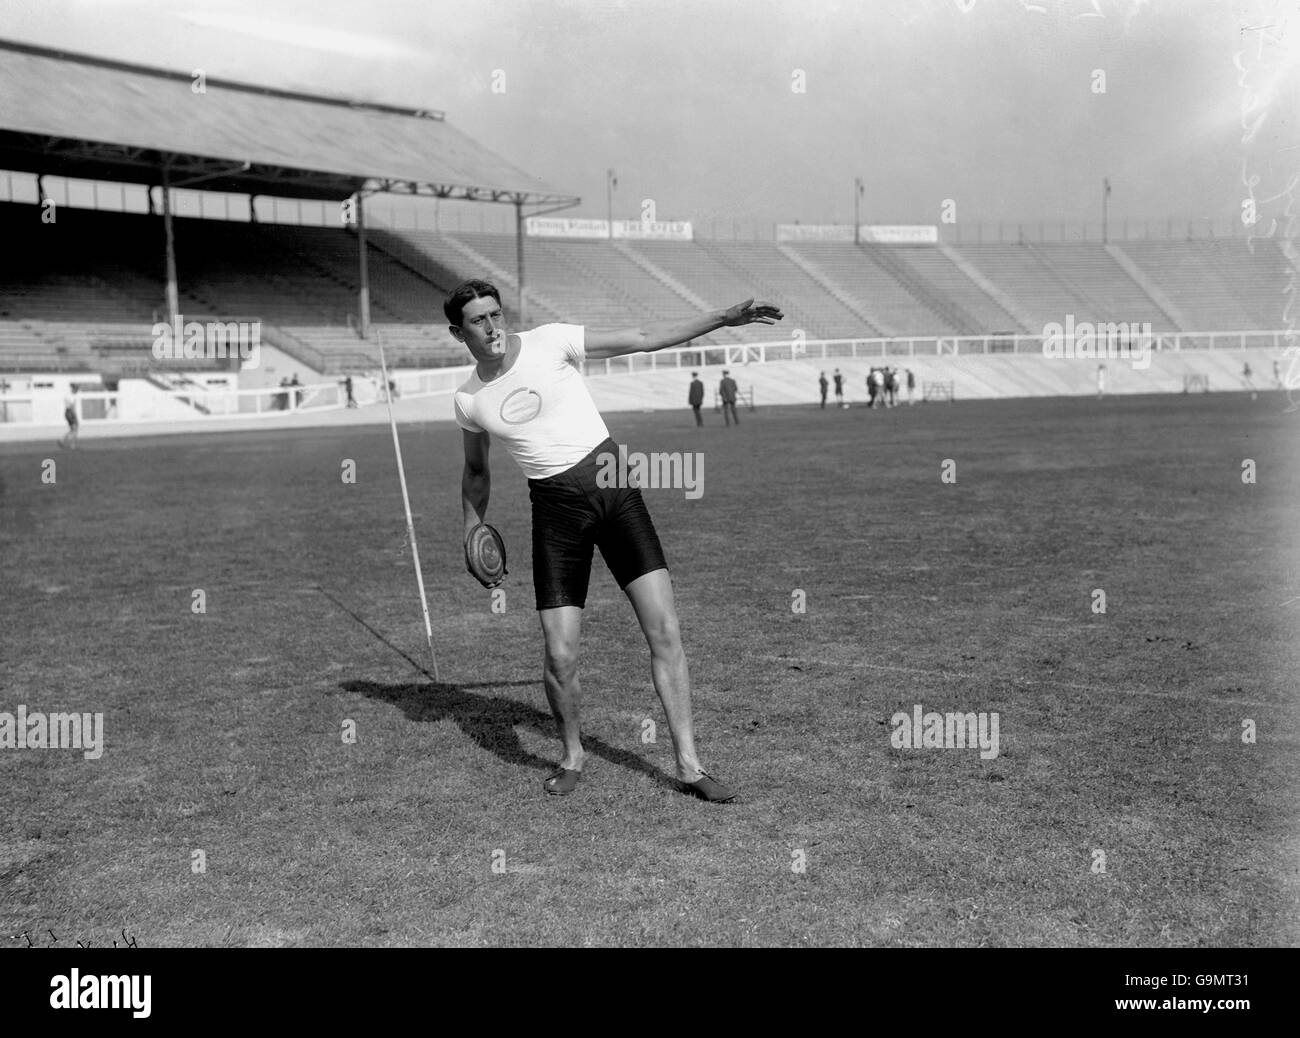 Athletics - London Olympic Games 1908 - Discus - White City - Stock Image